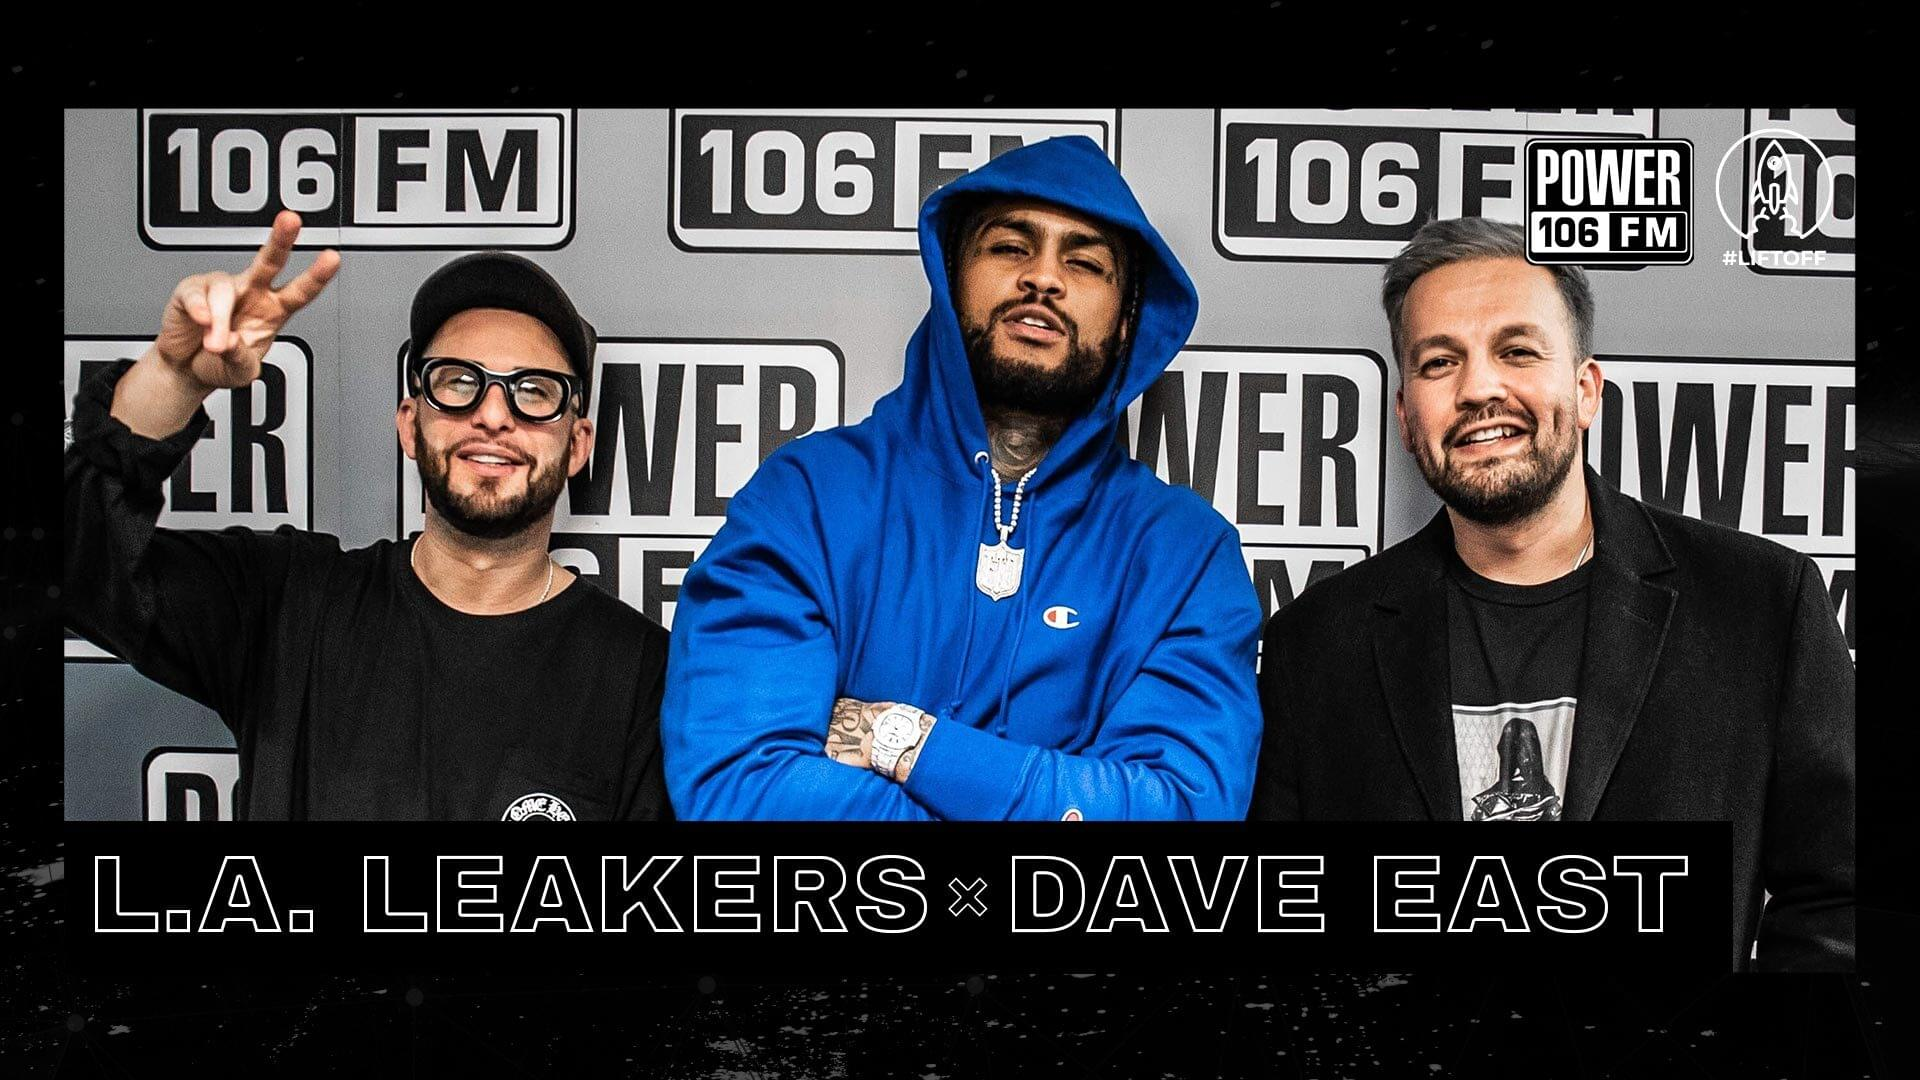 Dave East Compares Nipsey Hussle To 2Pac & Believes Hussle Will Be Studied In Future College Courses